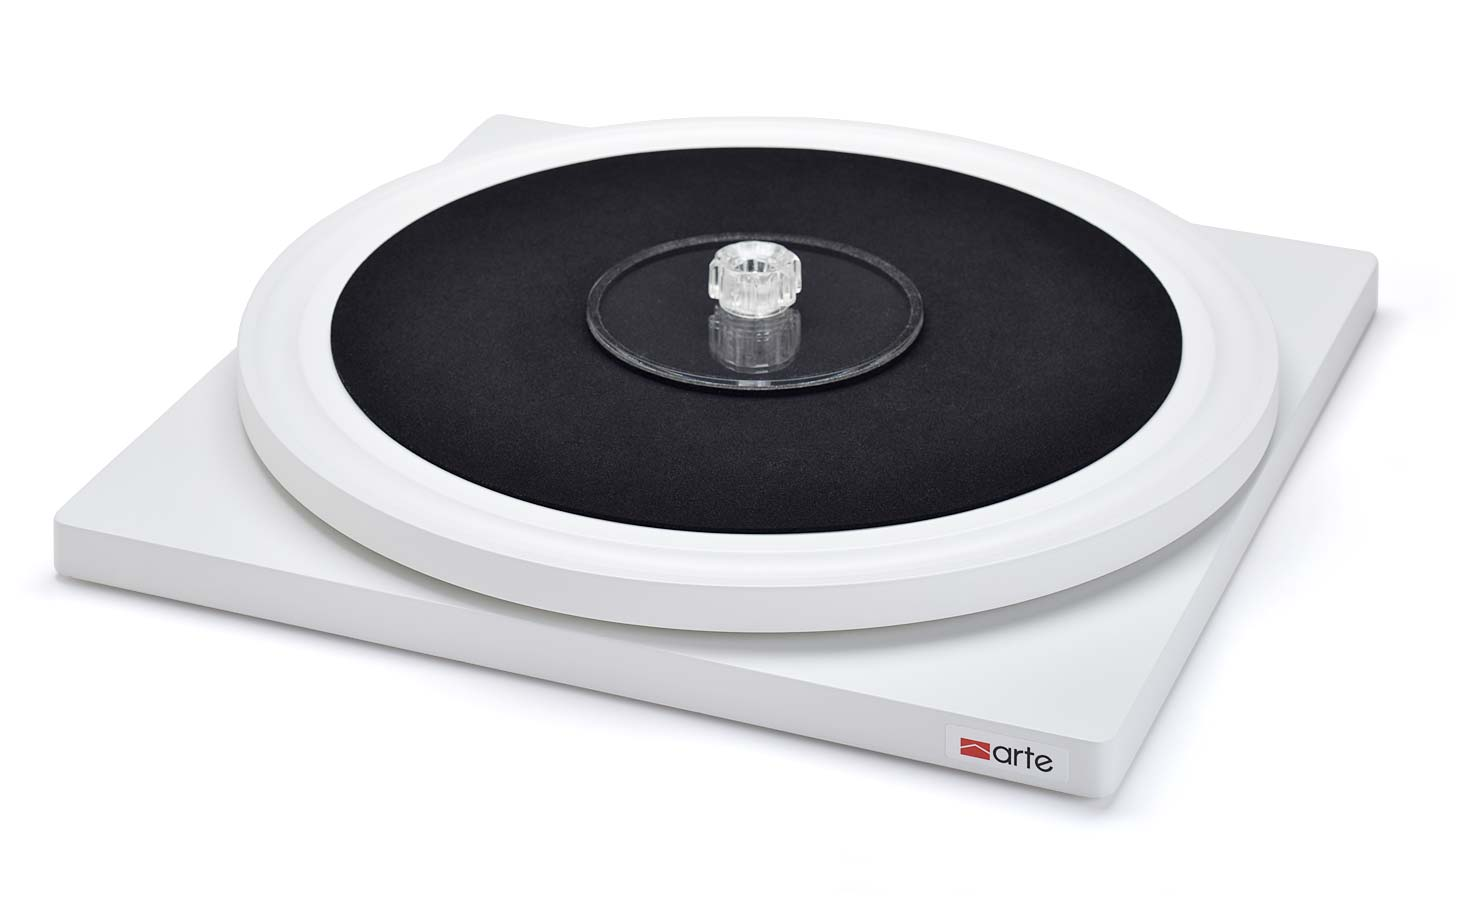 arte record cleaning turntable